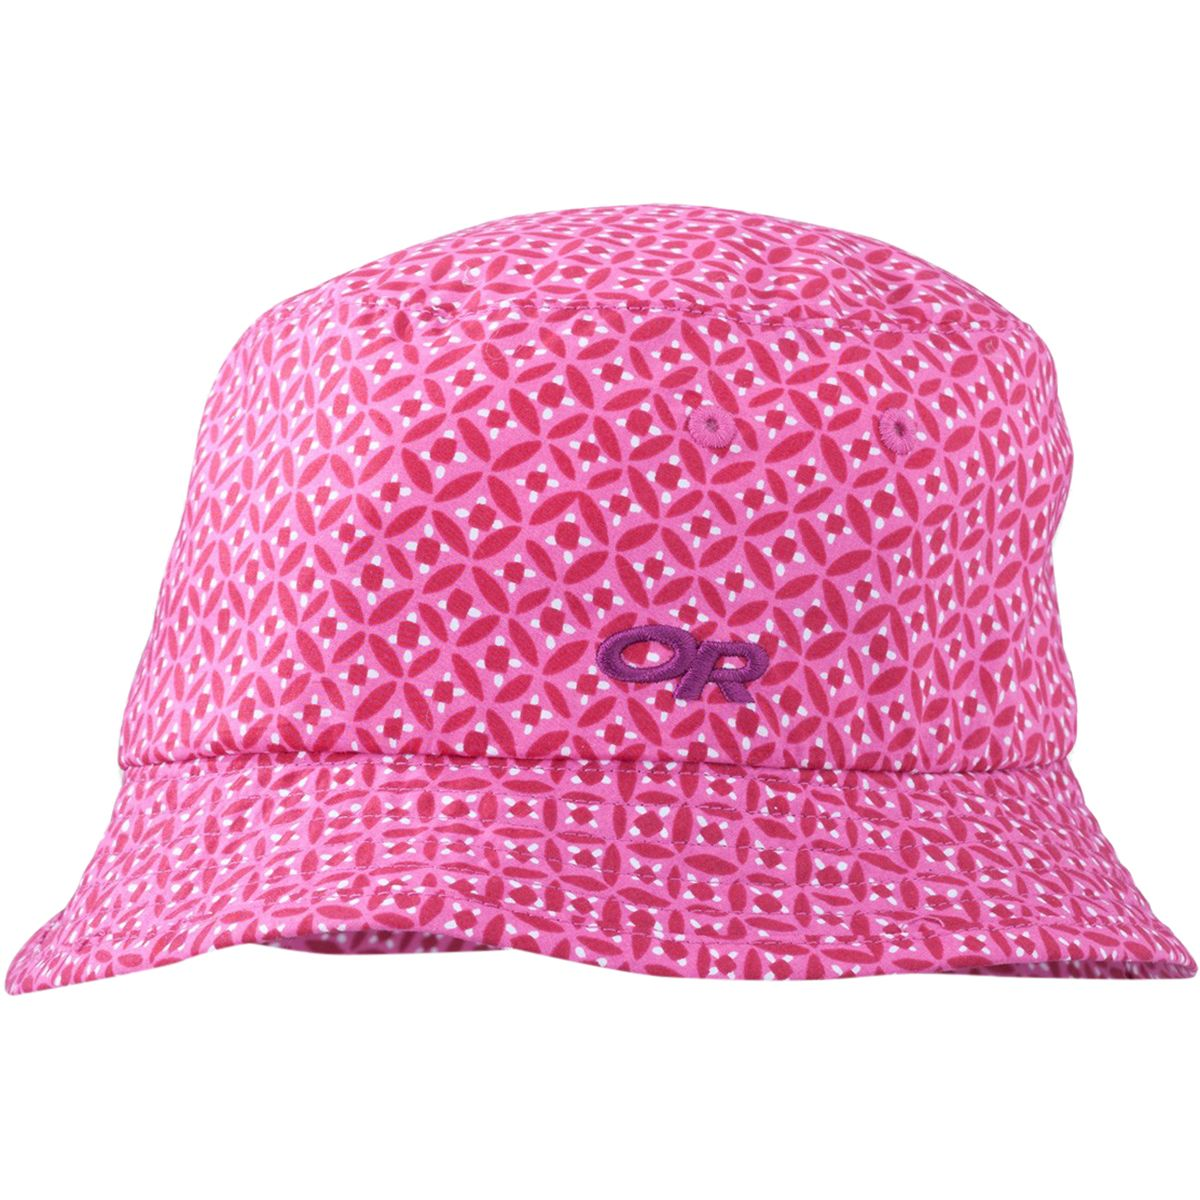 Outdoor Research Kendall Sun Hat - Kids